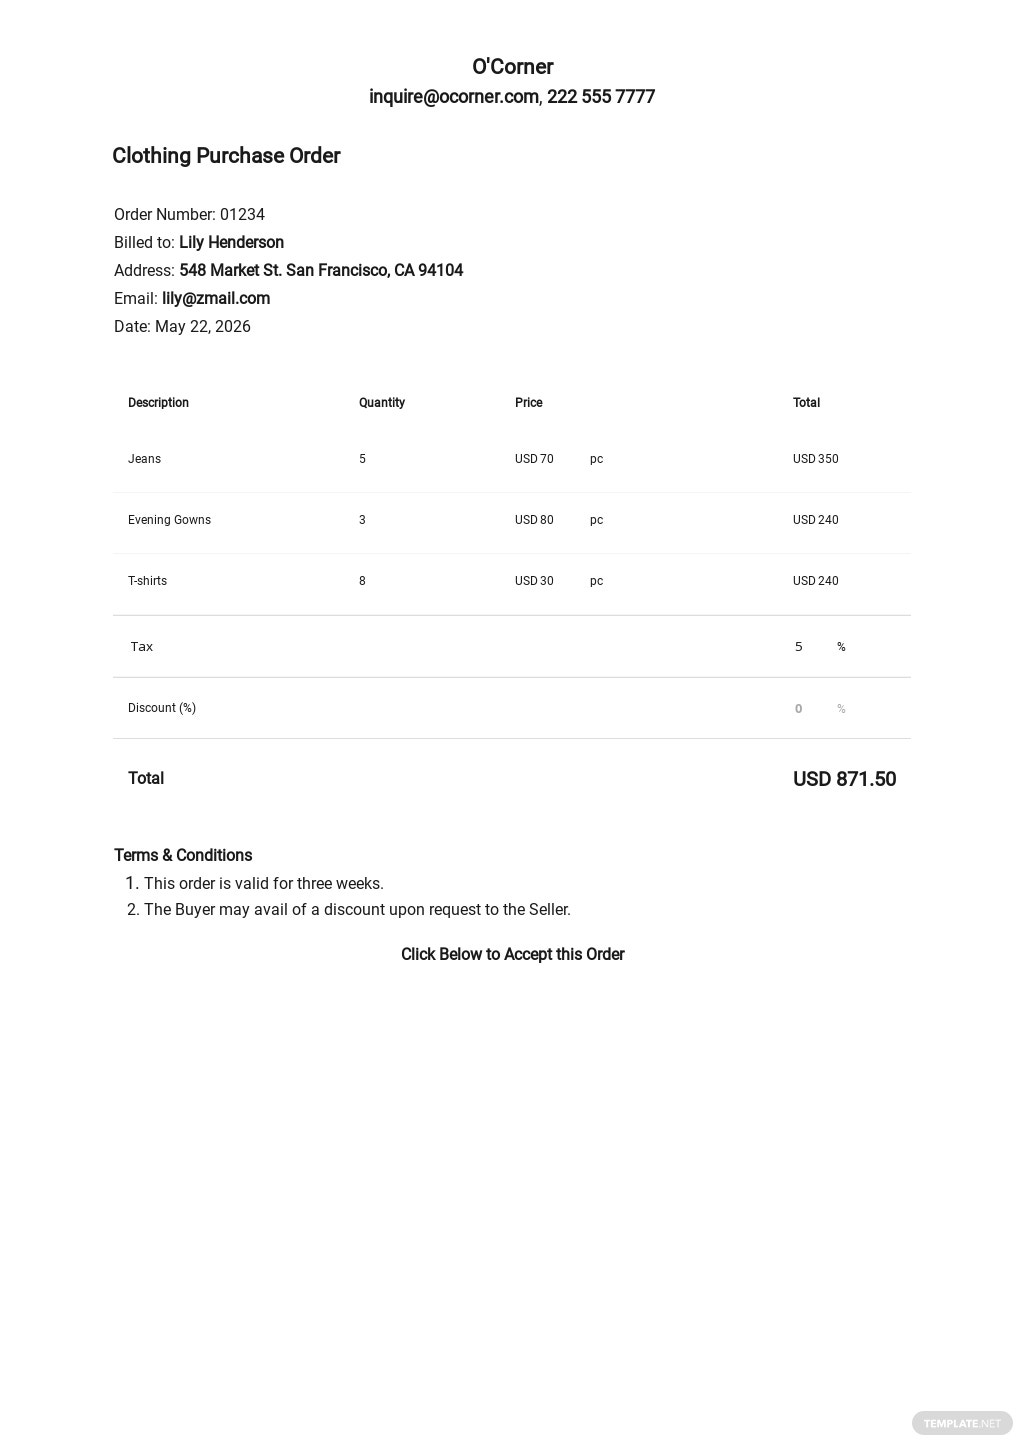 Free Standard Purchase Order Template.jpe